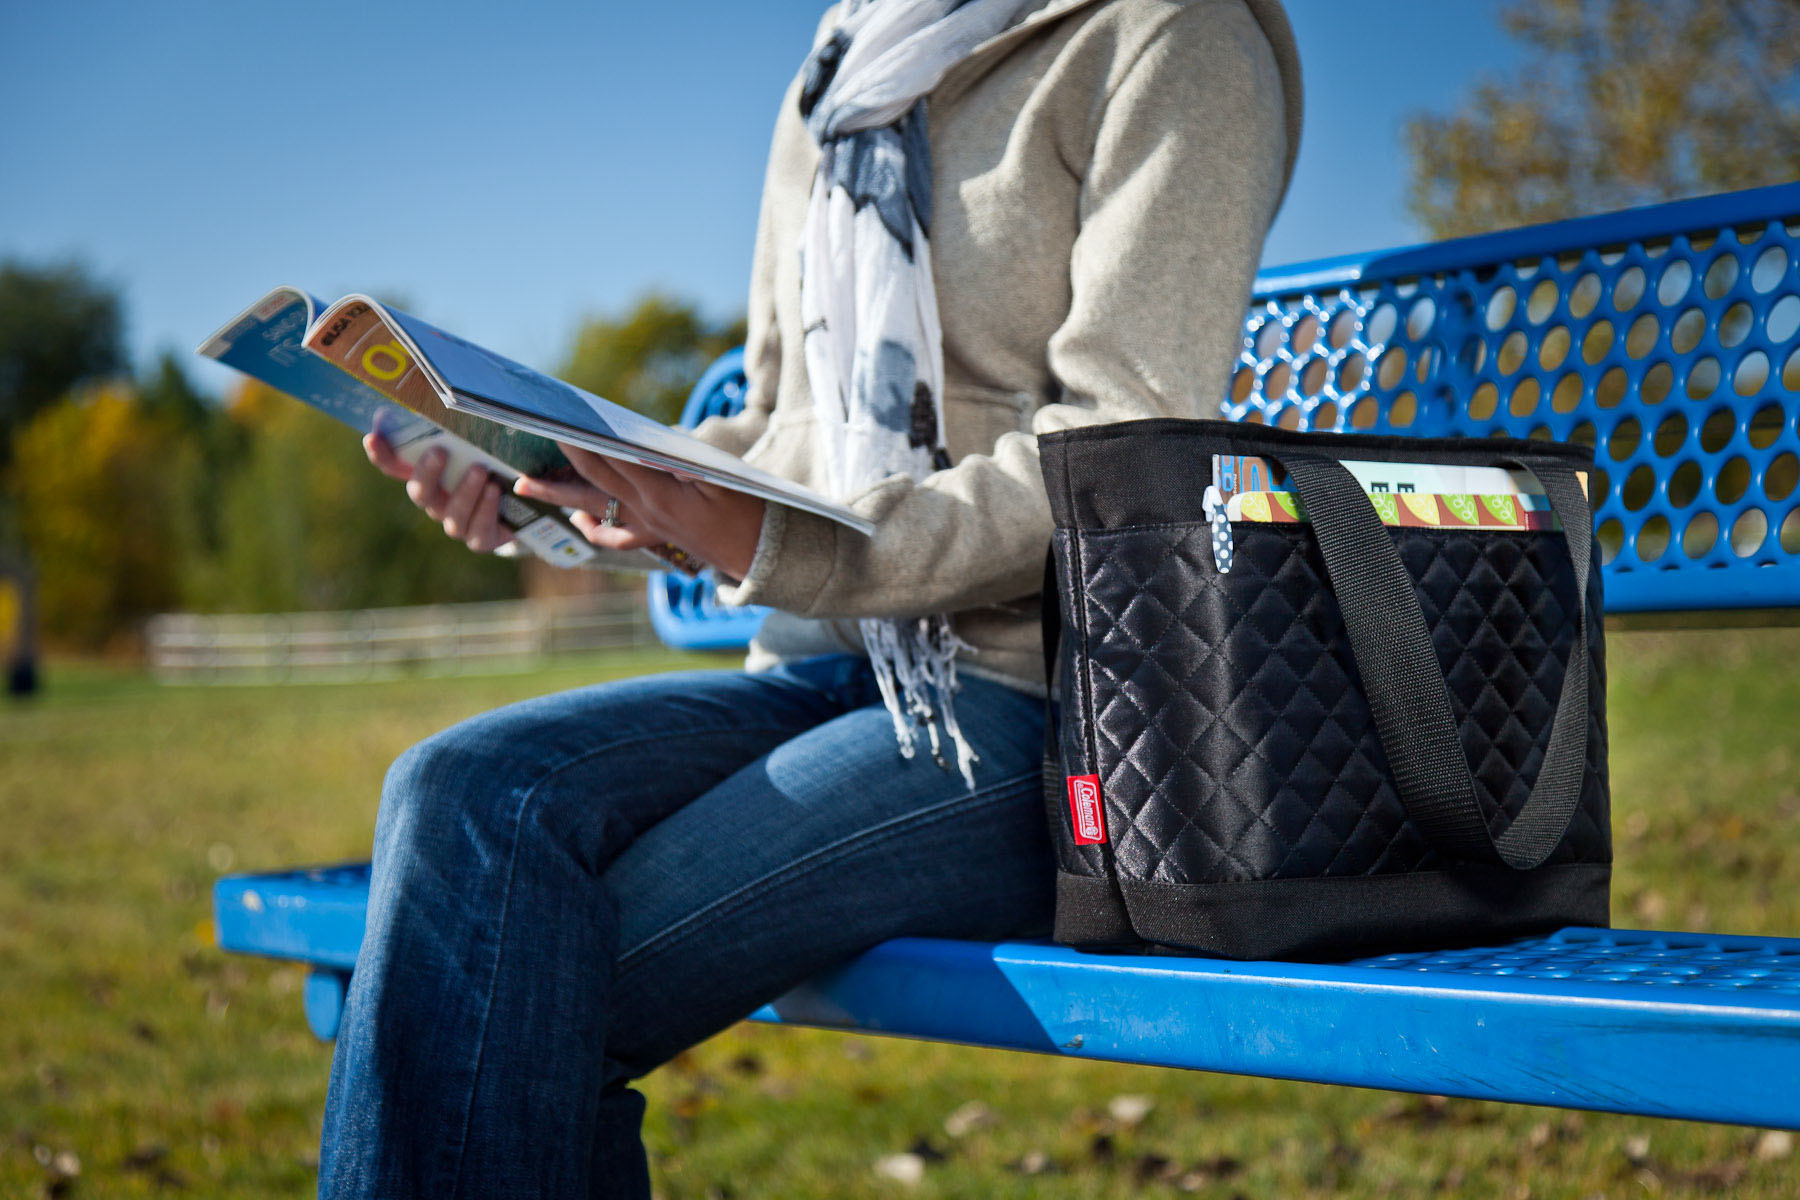 A lifestyle product photo of a Coleman Fashion Tote cooler on a park bench for product packaging, print collateral, and advertising